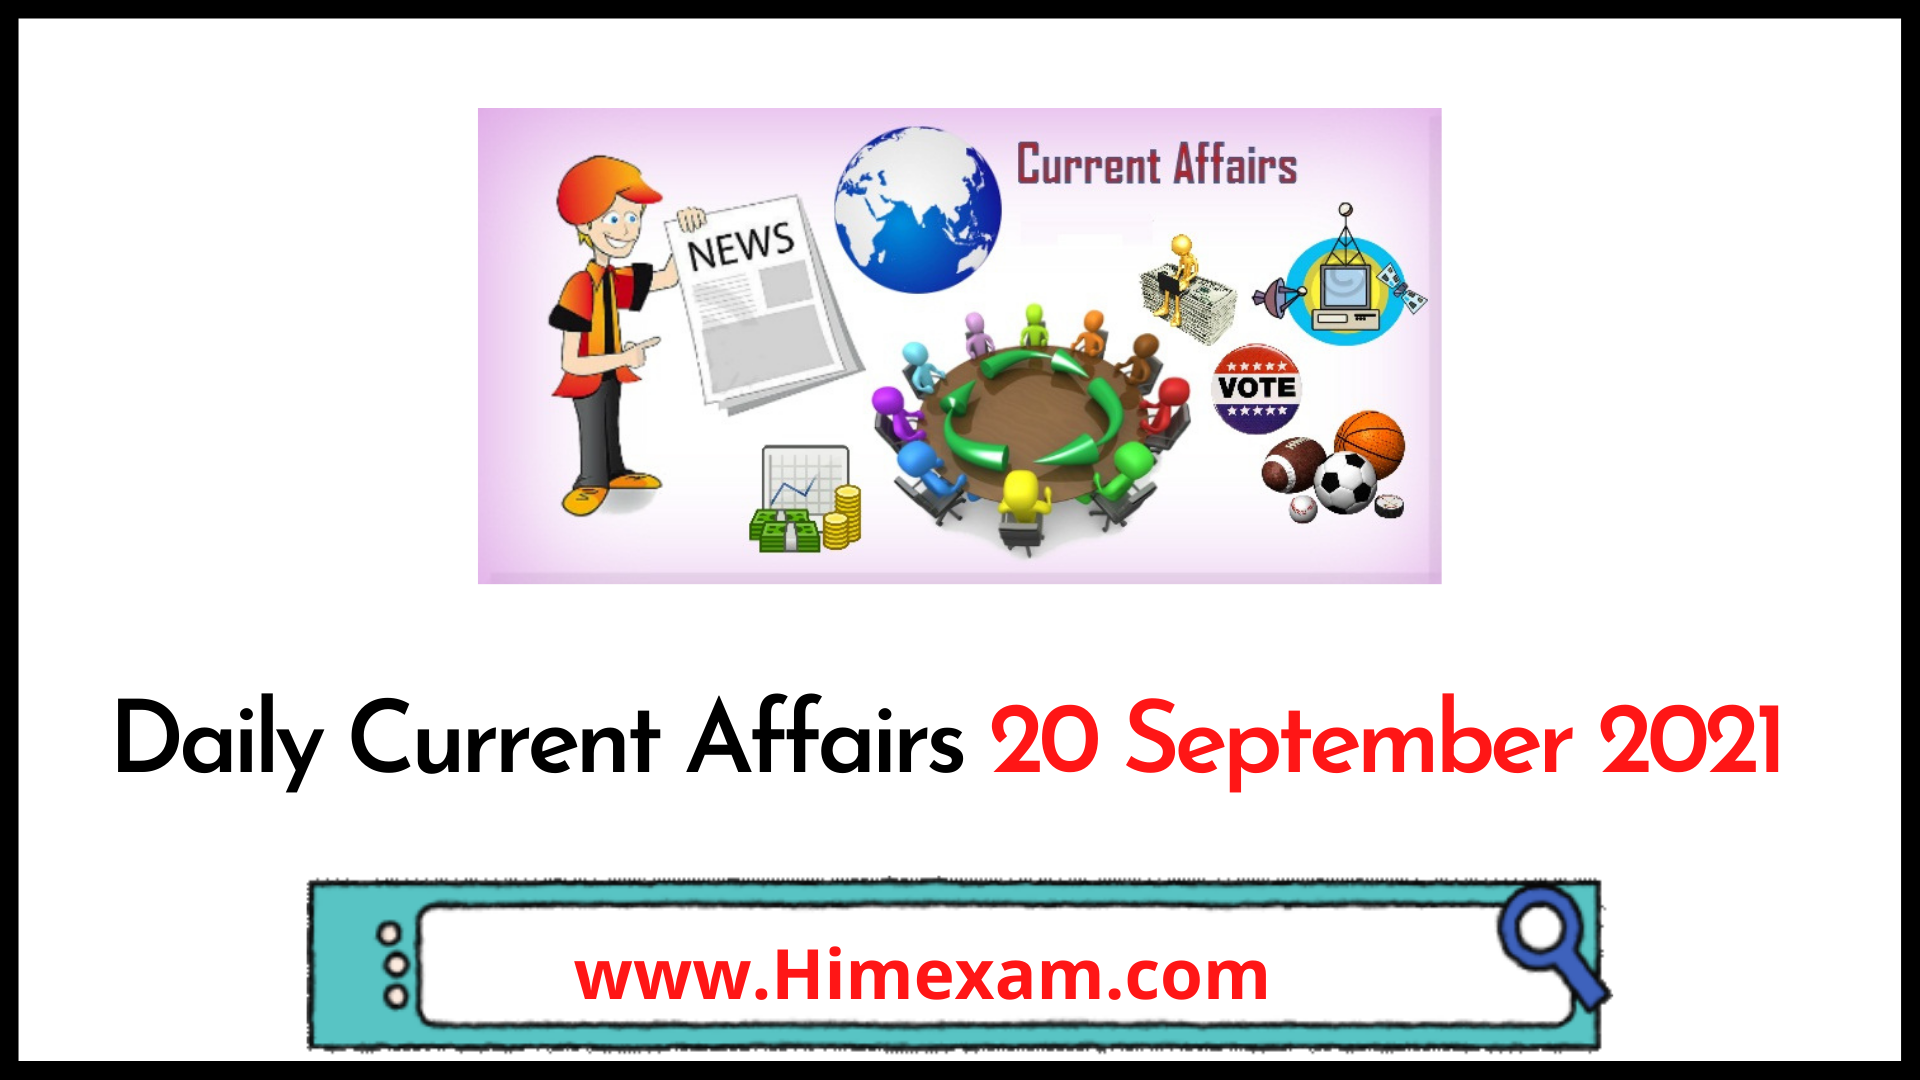 Daily Current Affairs 20 September 2021